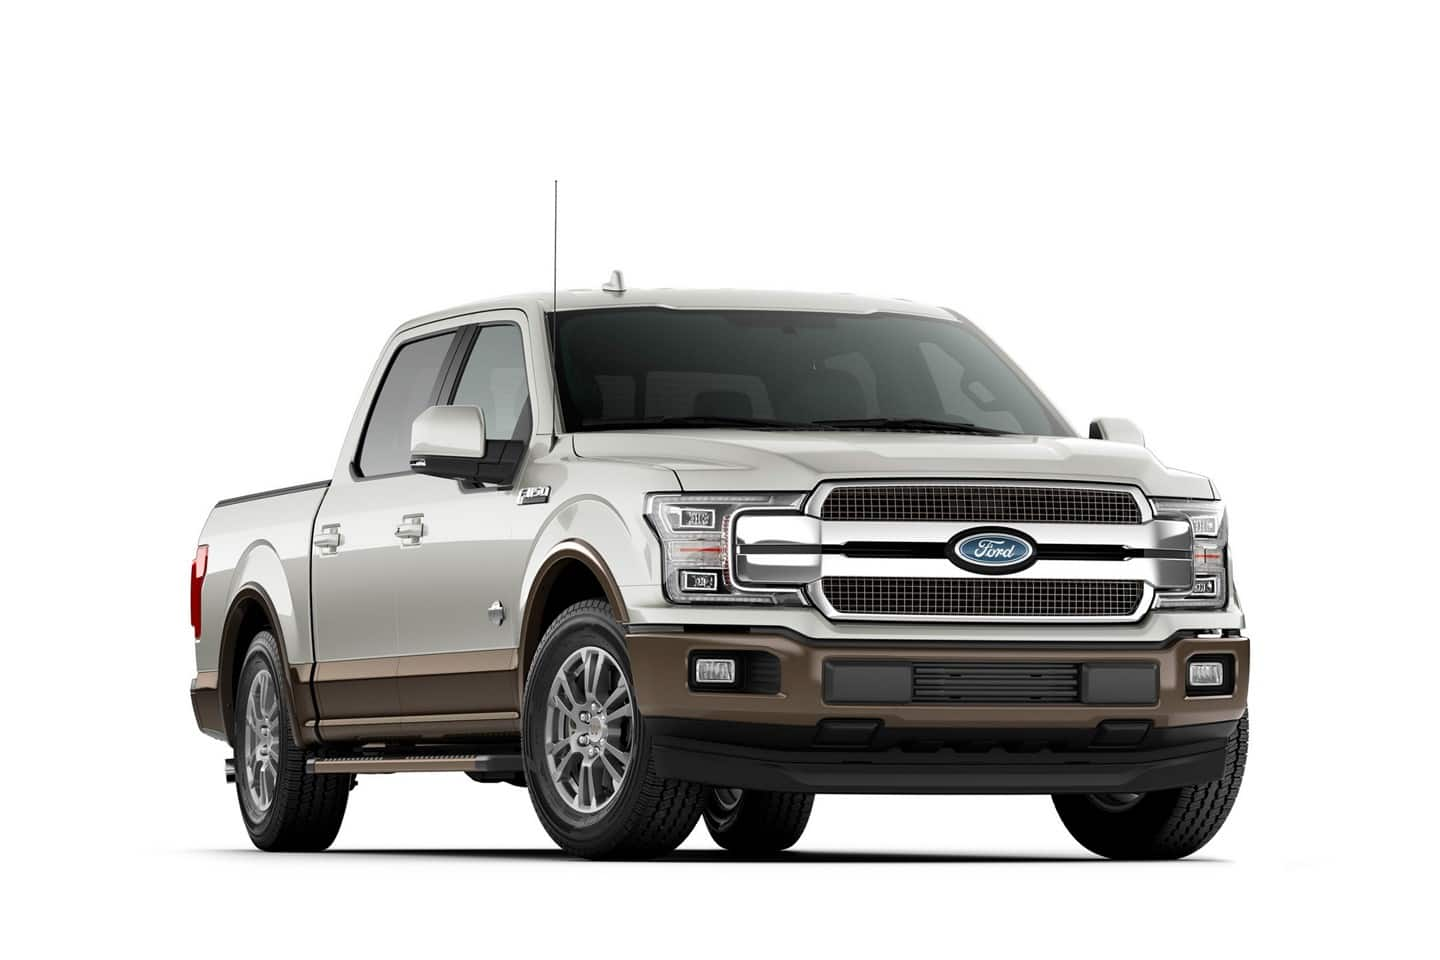 2019 Ford F 150 Limited Exterior Colors Ford King Ranch King Ranch Truck King Ranch